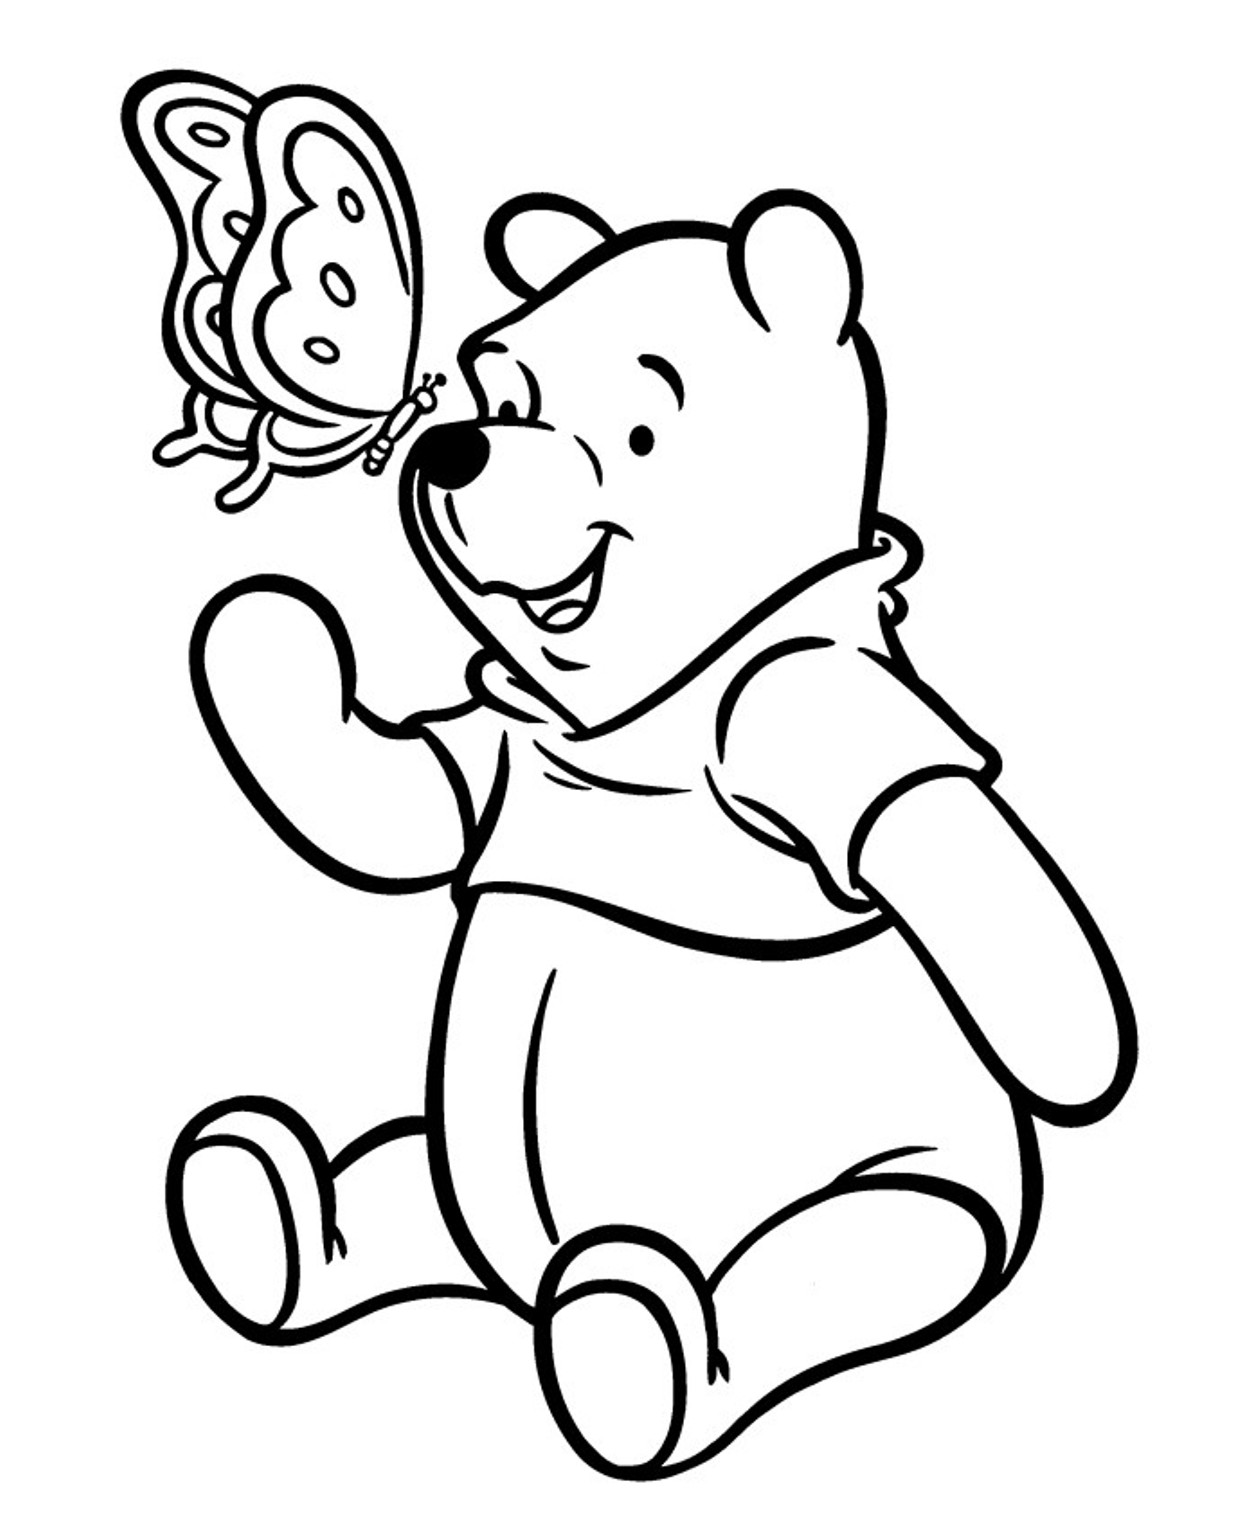 how to draw pooh bear pooh bear drawing free download on clipartmag draw pooh how bear to